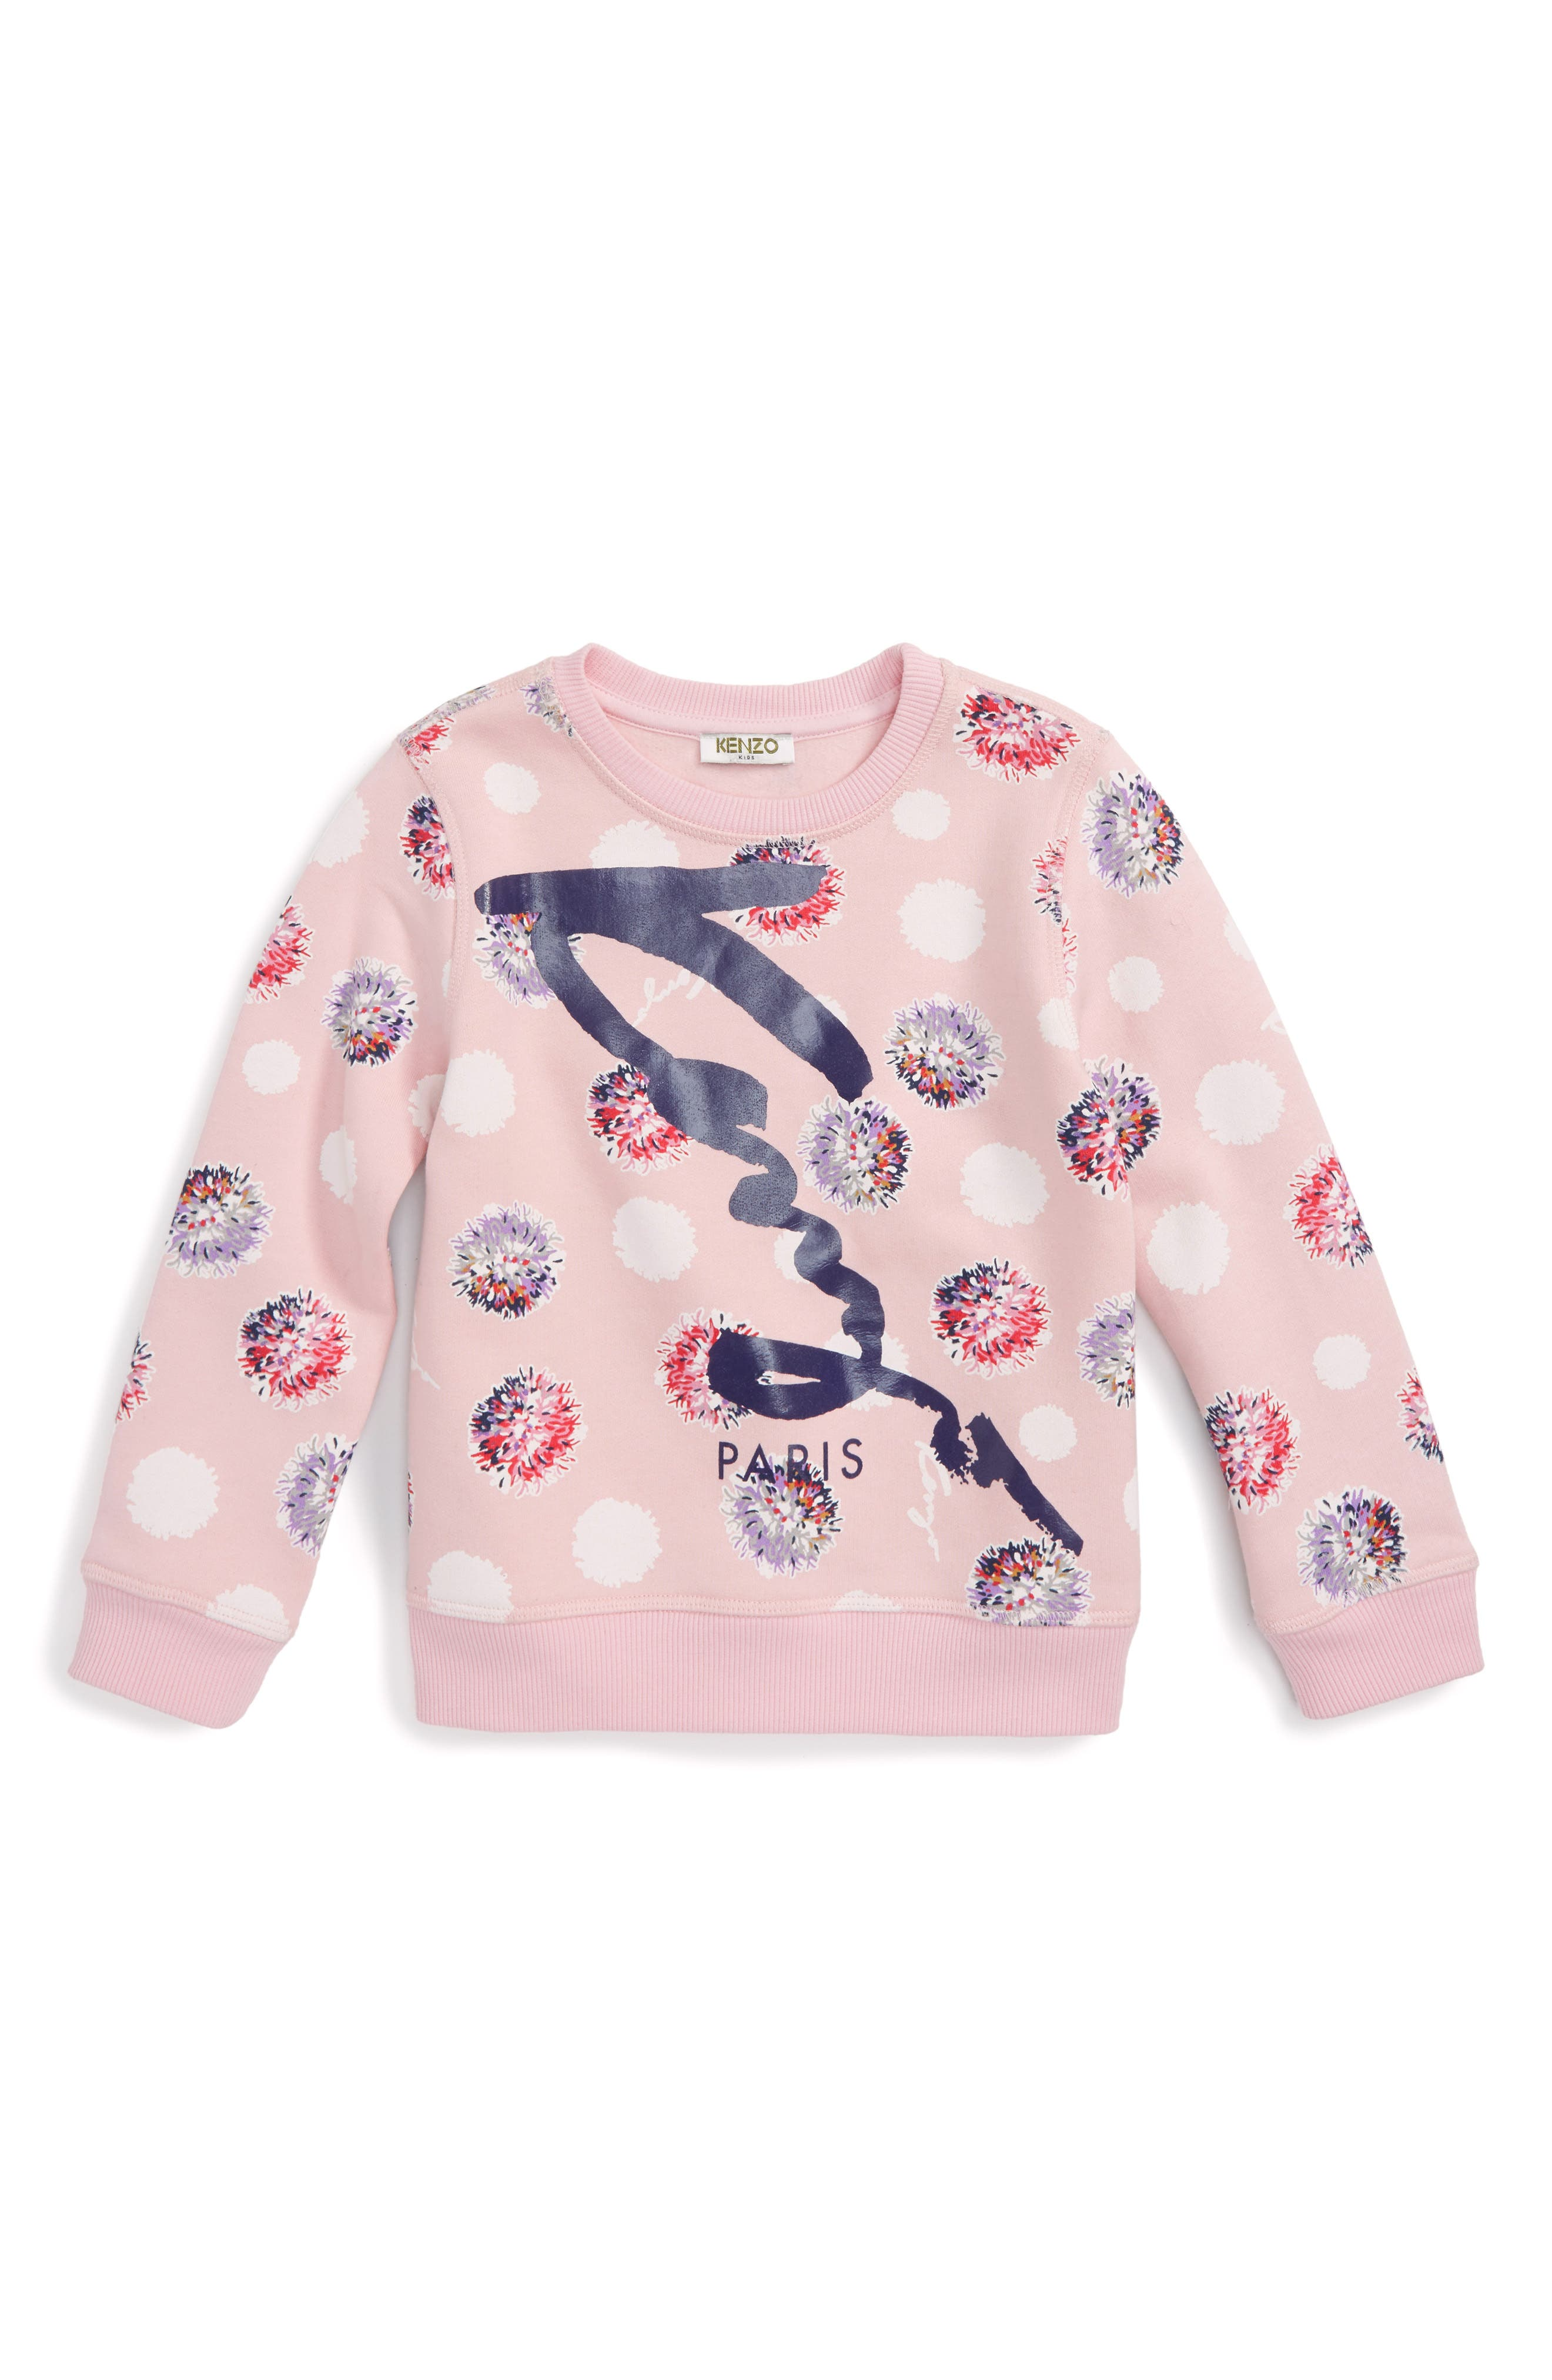 KENZO Floral Logo Sweatshirt (Toddler Girls, Little Girls & Big Girls)